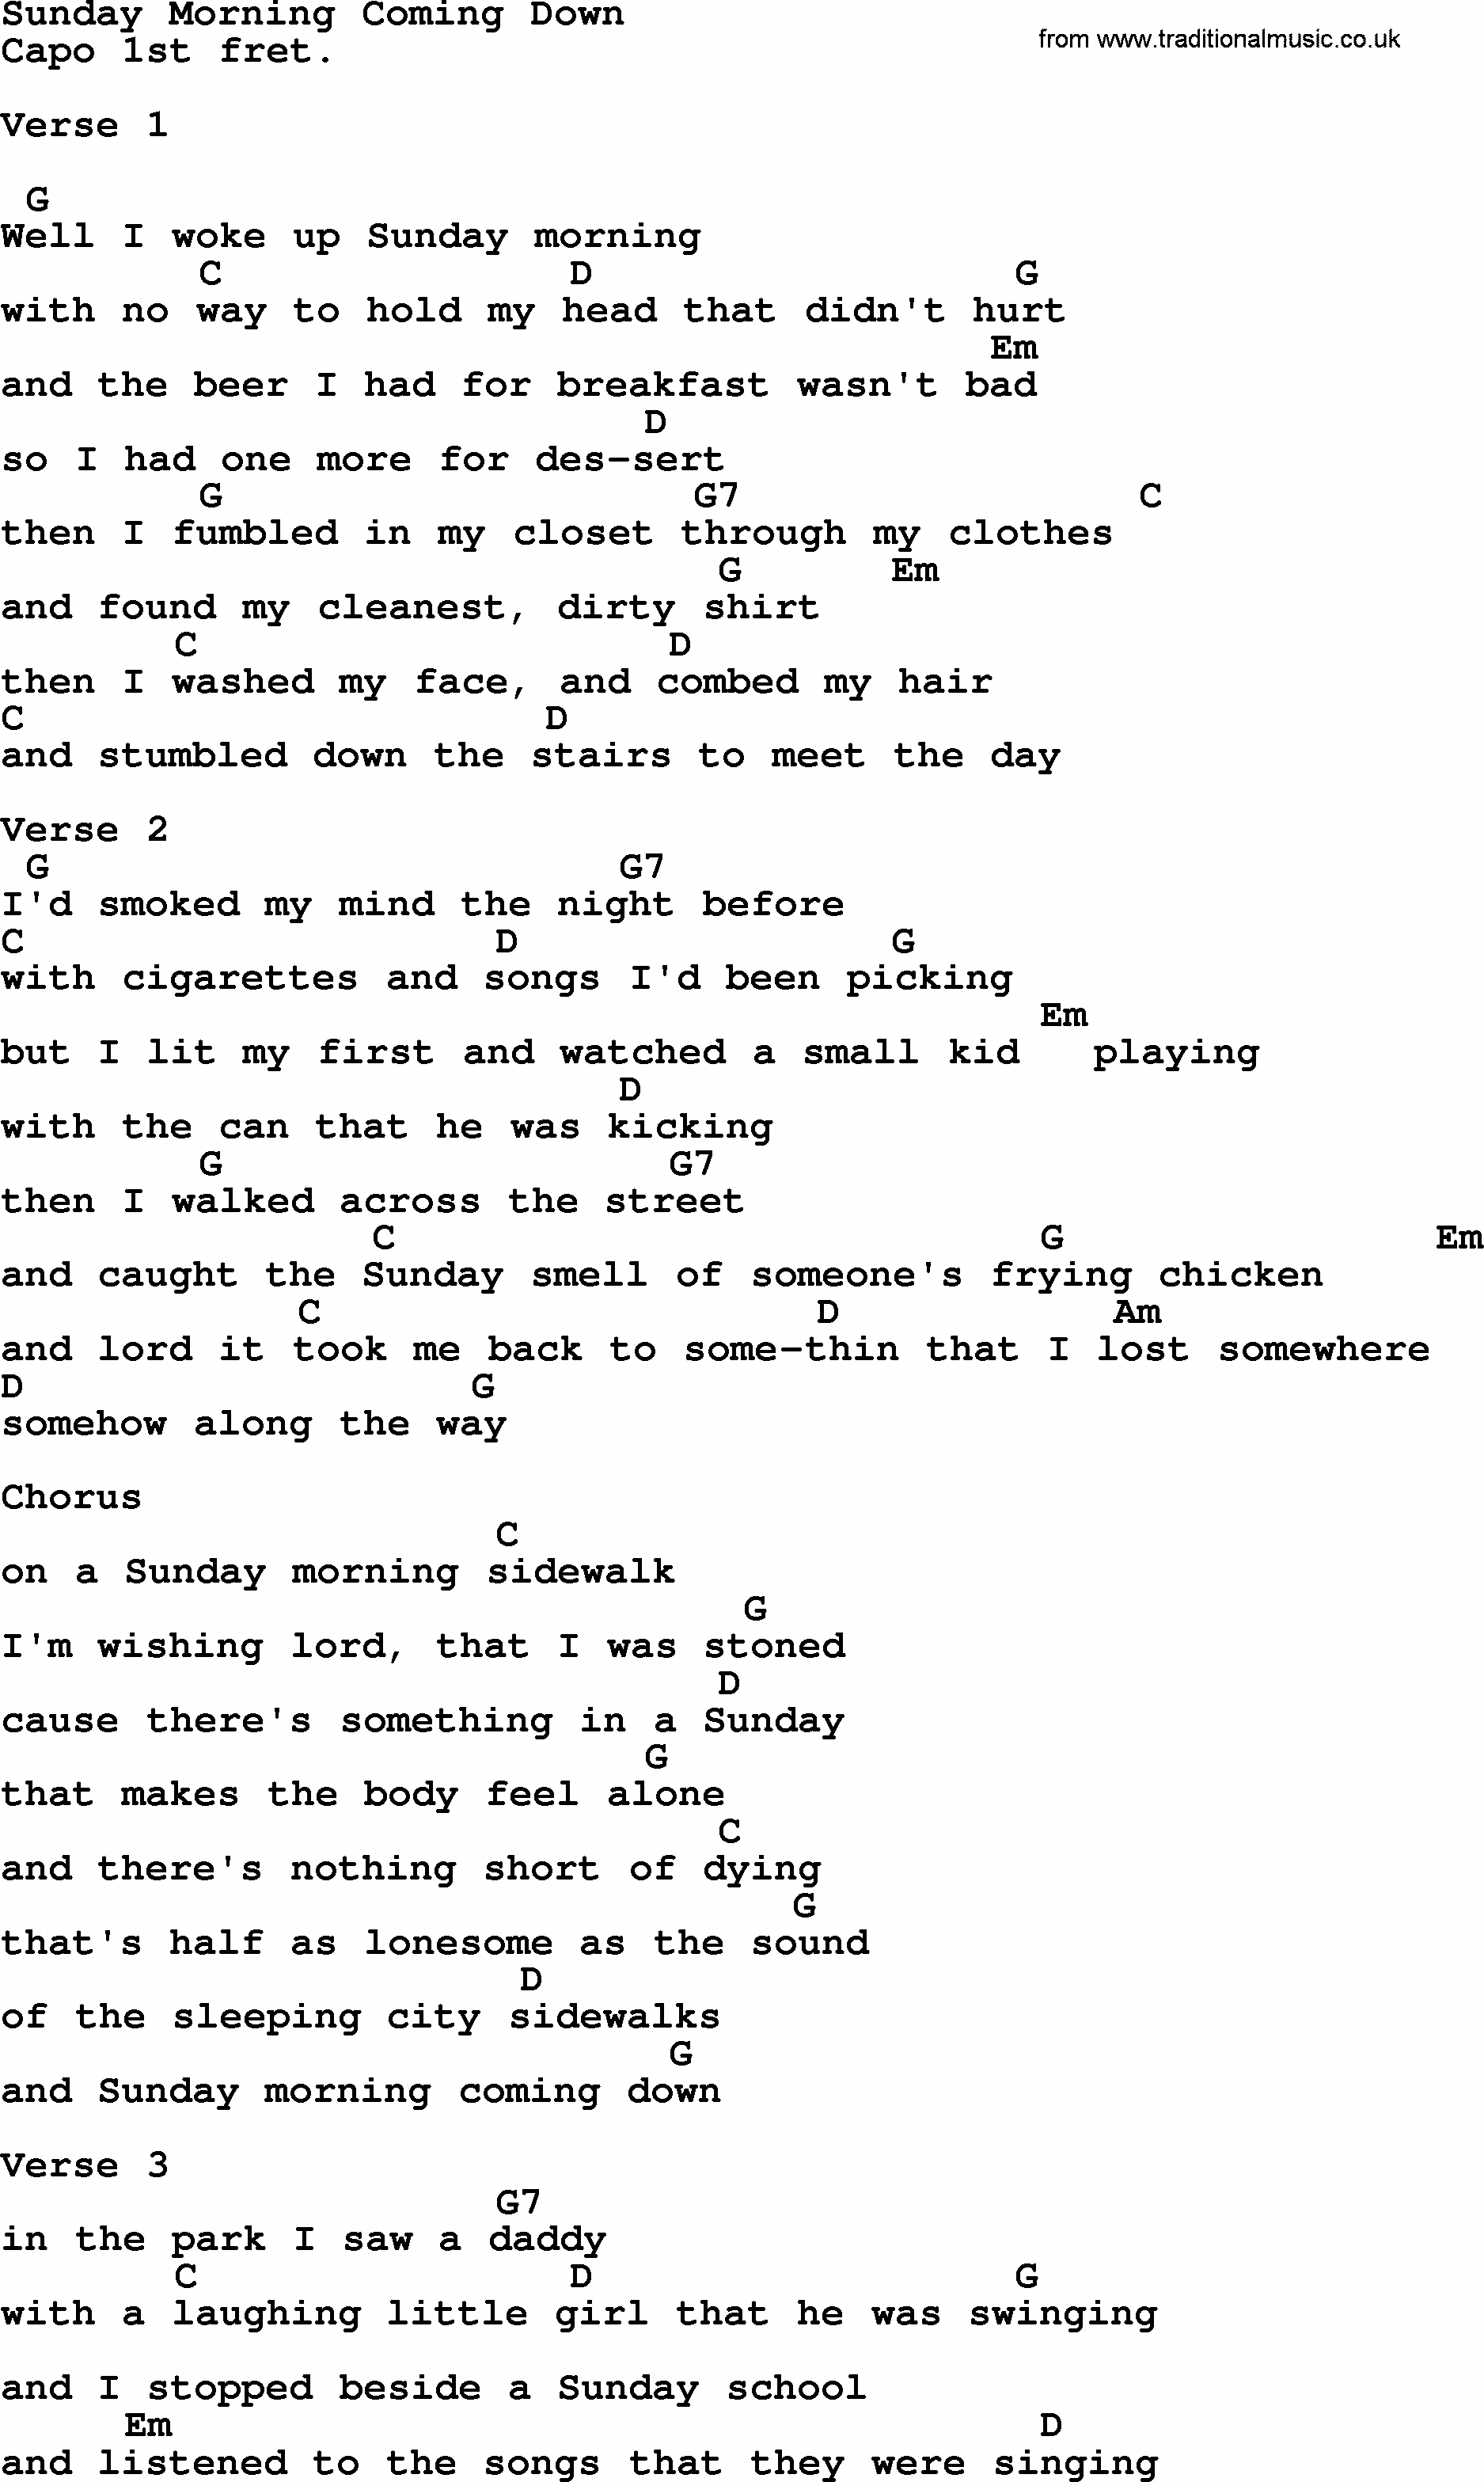 Johnny Cash Song Sunday Morning Coming Down Lyrics And Chords Johnnycash Lyrics And Chords Guitar Chords For Songs Easy Guitar Songs